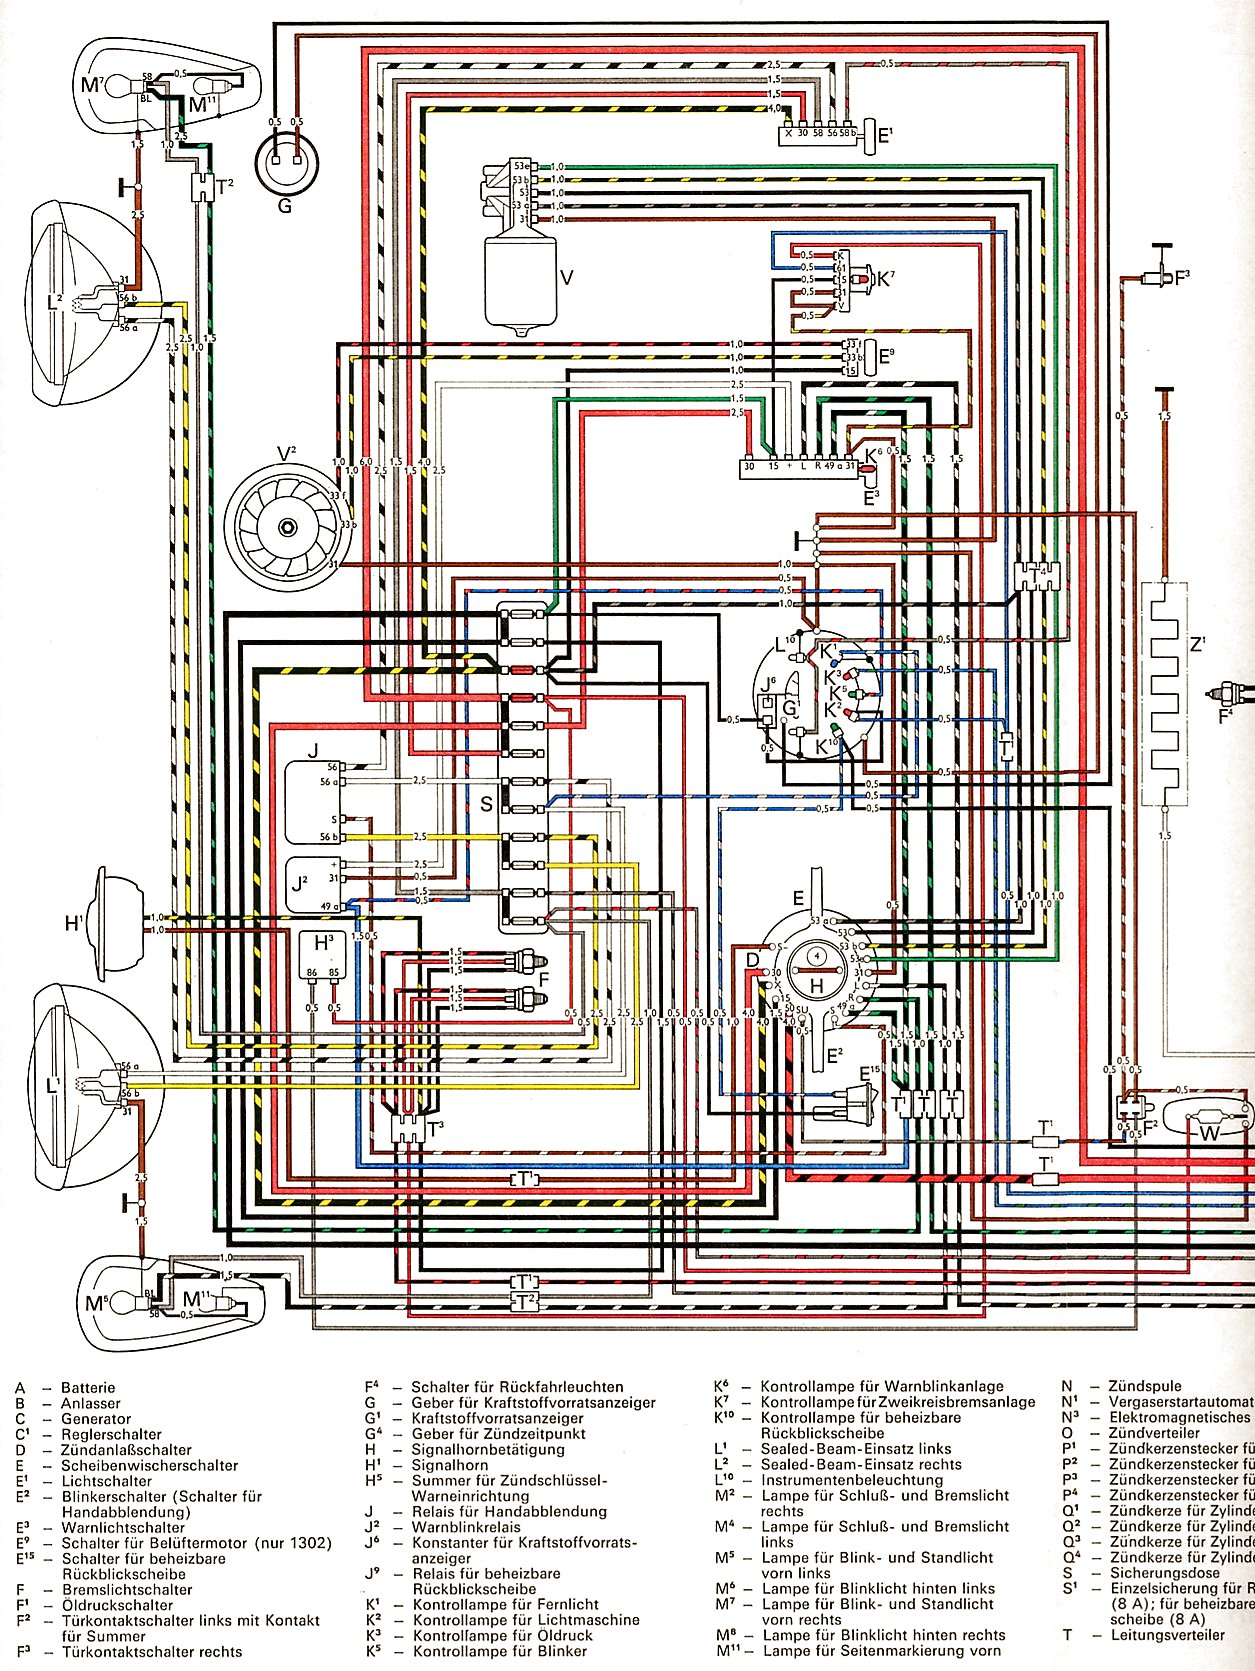 74 Beetle Wiring Diagram For Lights On Reveolution Of 1971 Vw Bug Ignition Need 1974 Standard Fuse Panel Help Shoptalkforums Com Rh 1964 1973 Volkswagen